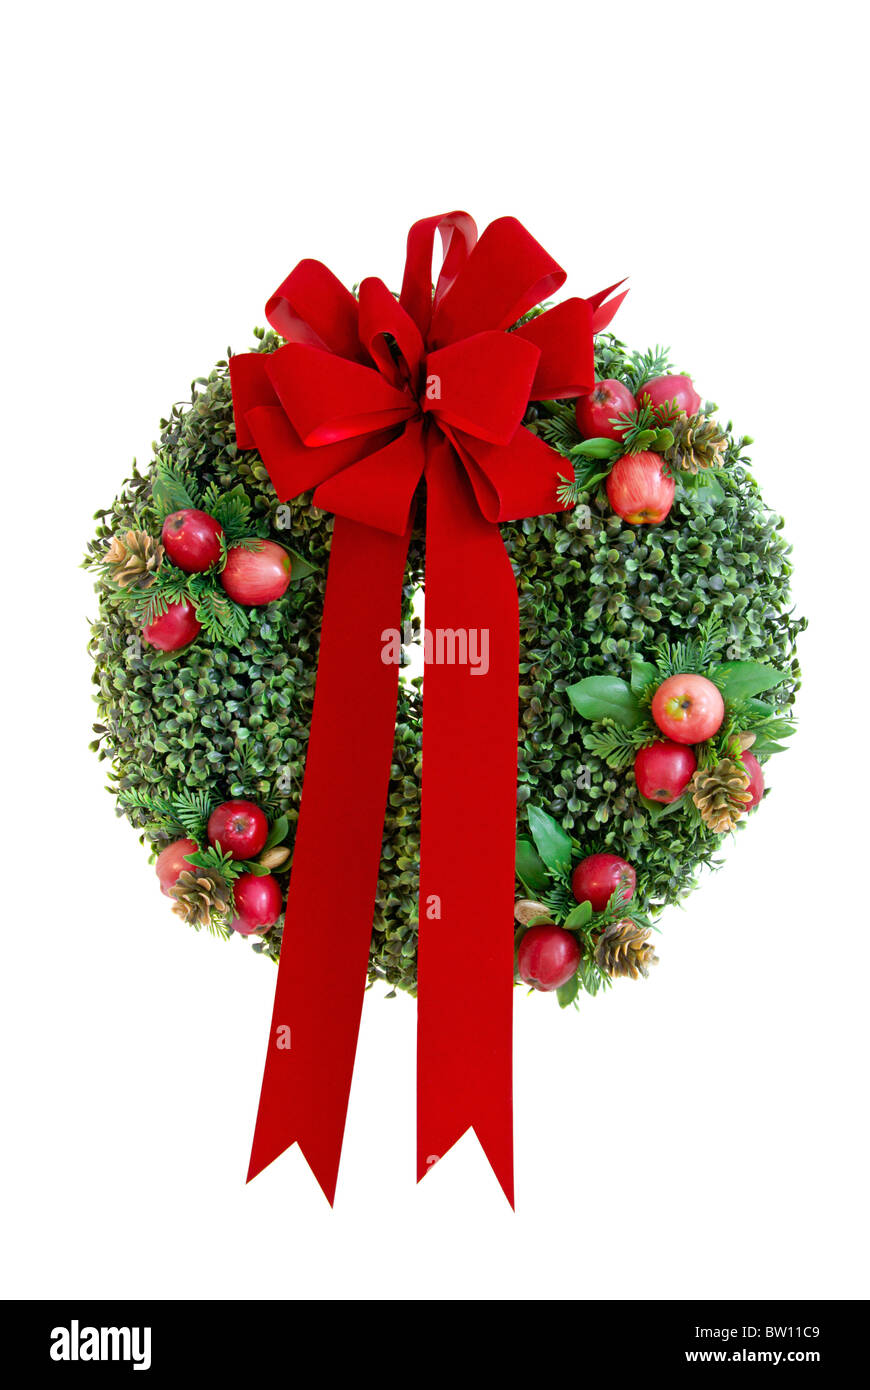 Christmas wreath with red velvet bow isolated on a white background Stock Photo